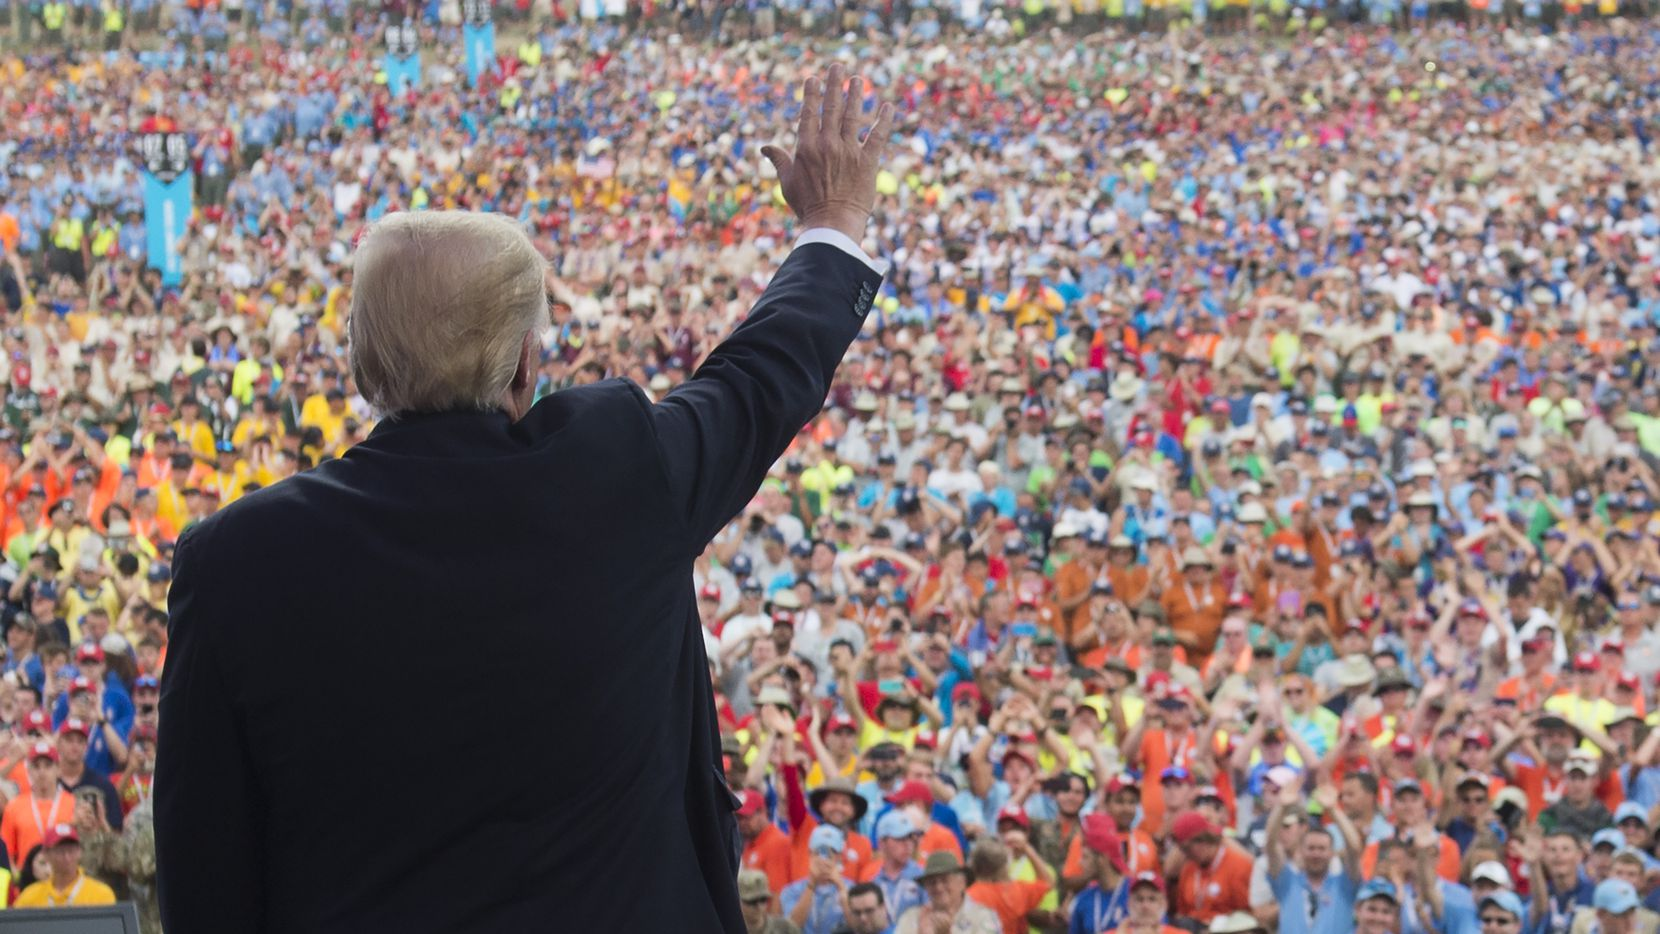 US President Donald Trump waves after speaking to Boy Scouts during the National Boy Scout Jamboree at Summit Bechtel National Scout Reserve in Glen Jean, West Virginia, July 24, 2017.